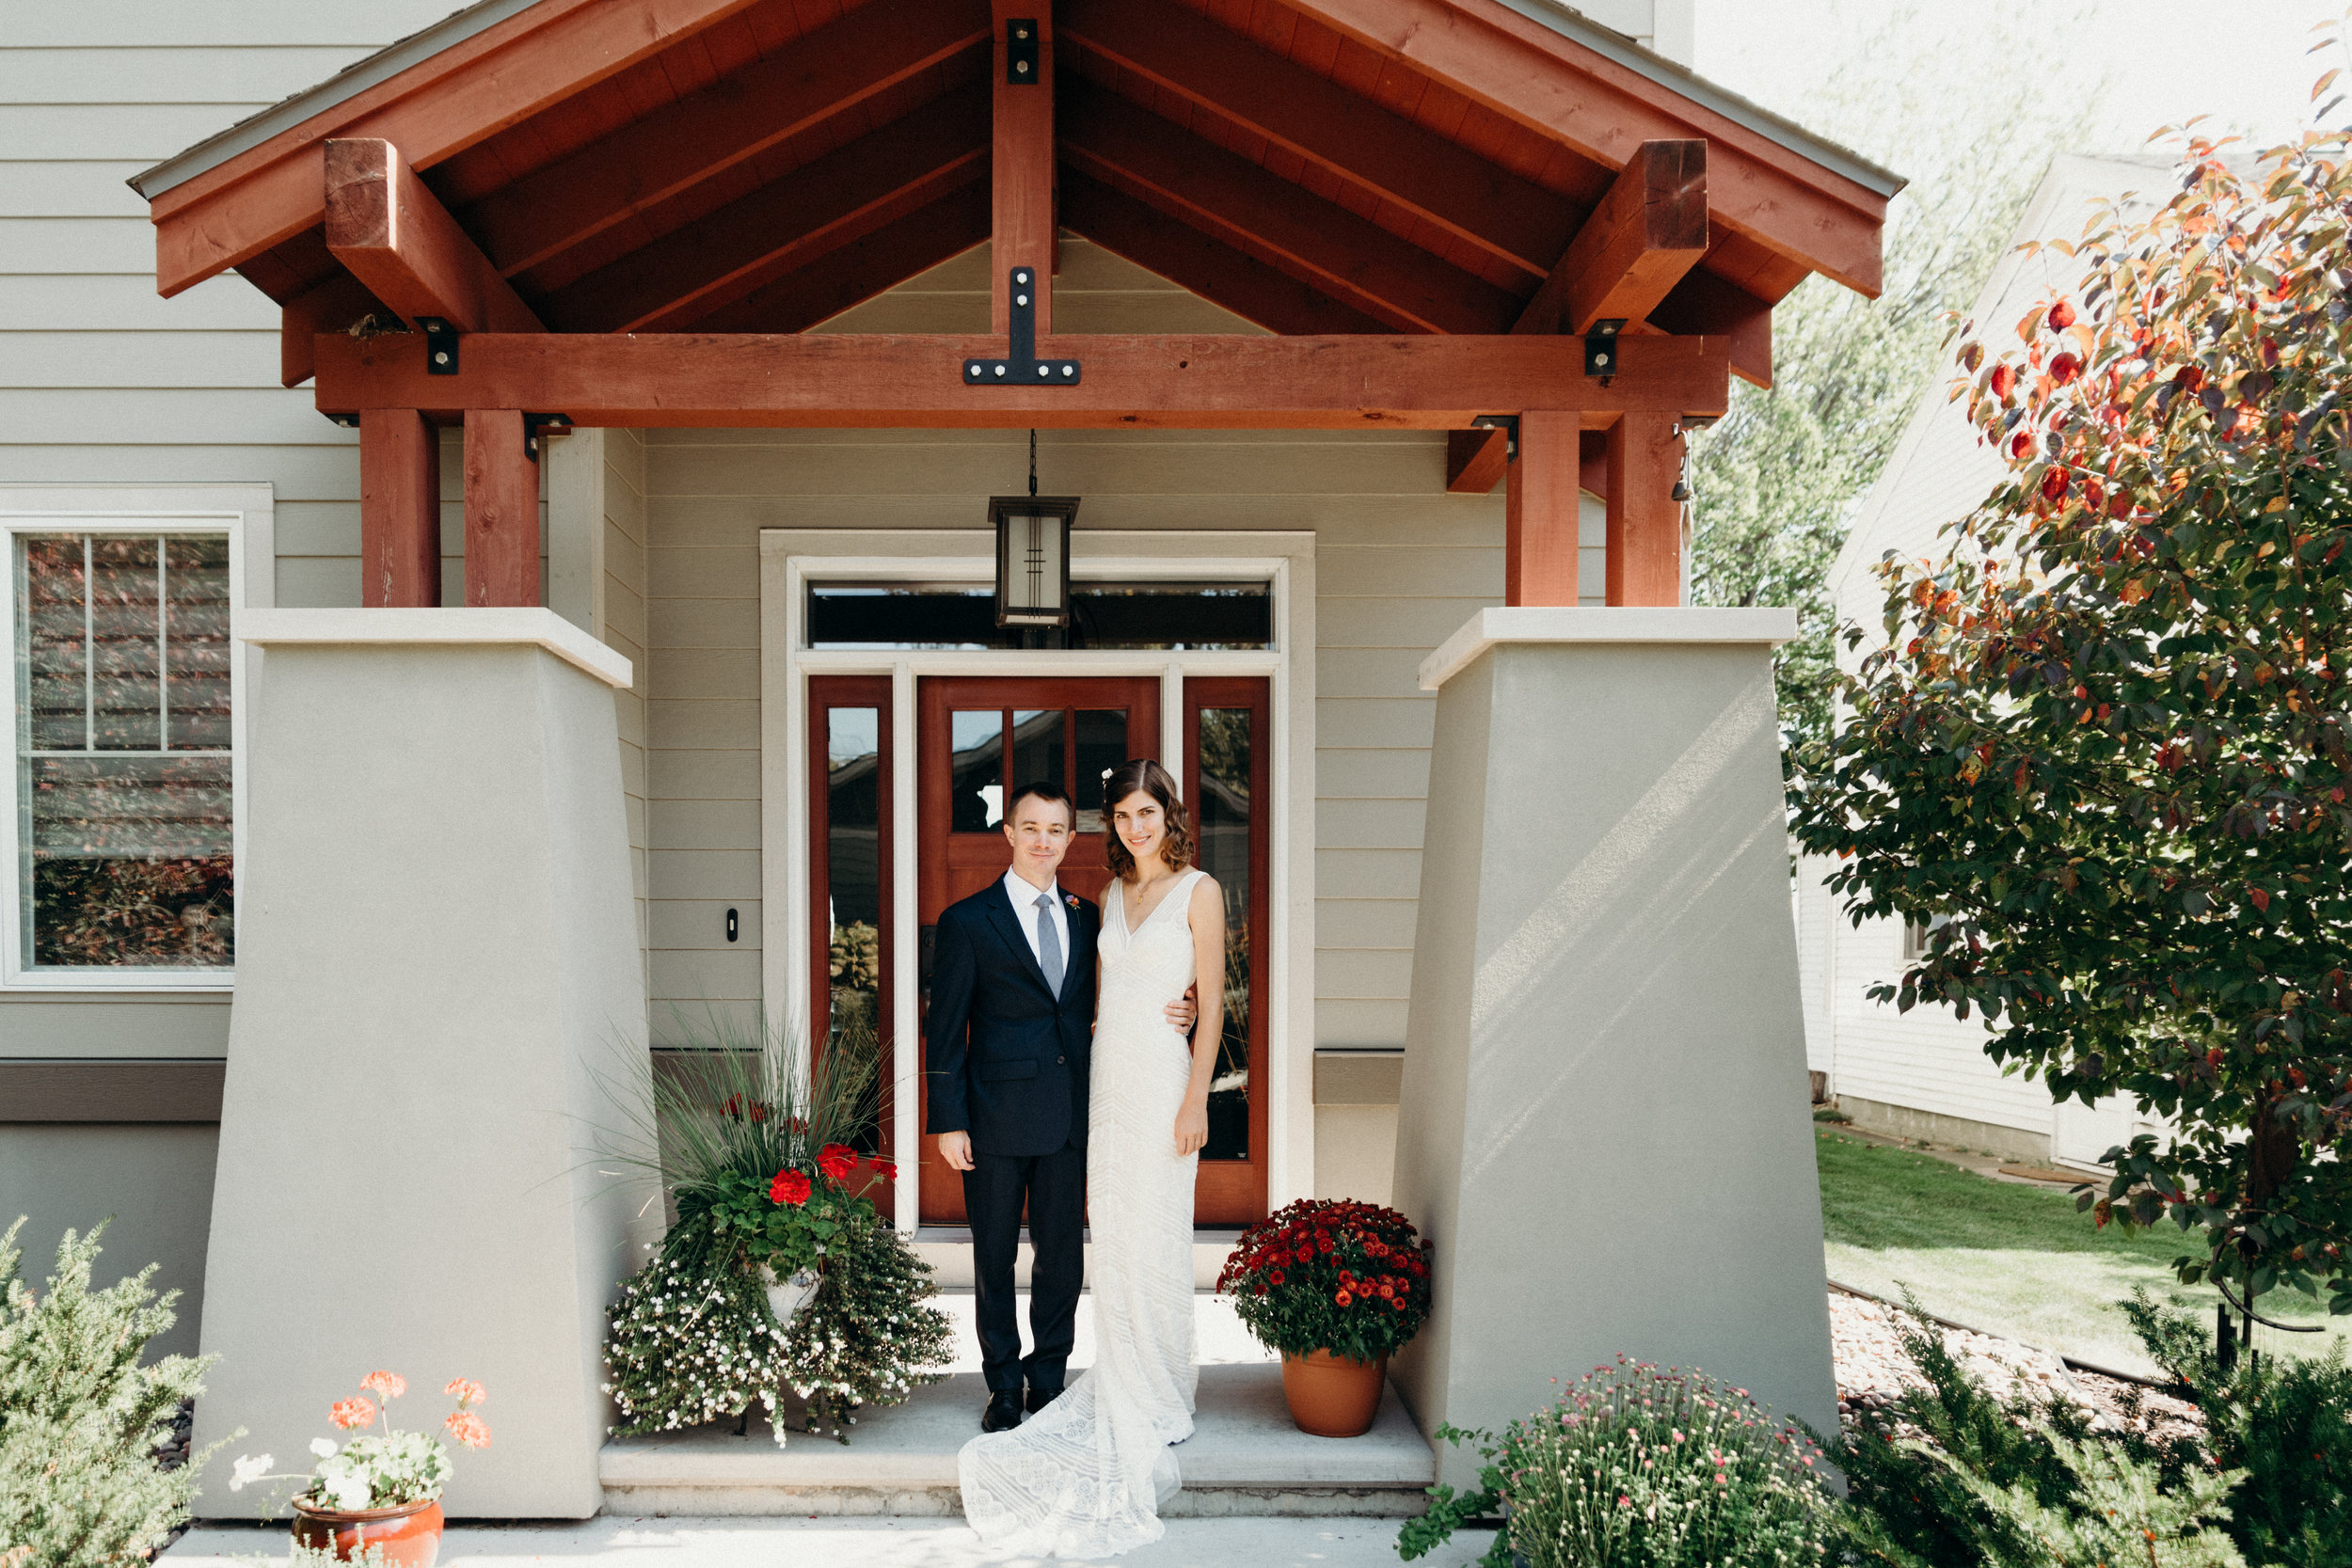 Bride and groom pose for a portrait on the front porch.